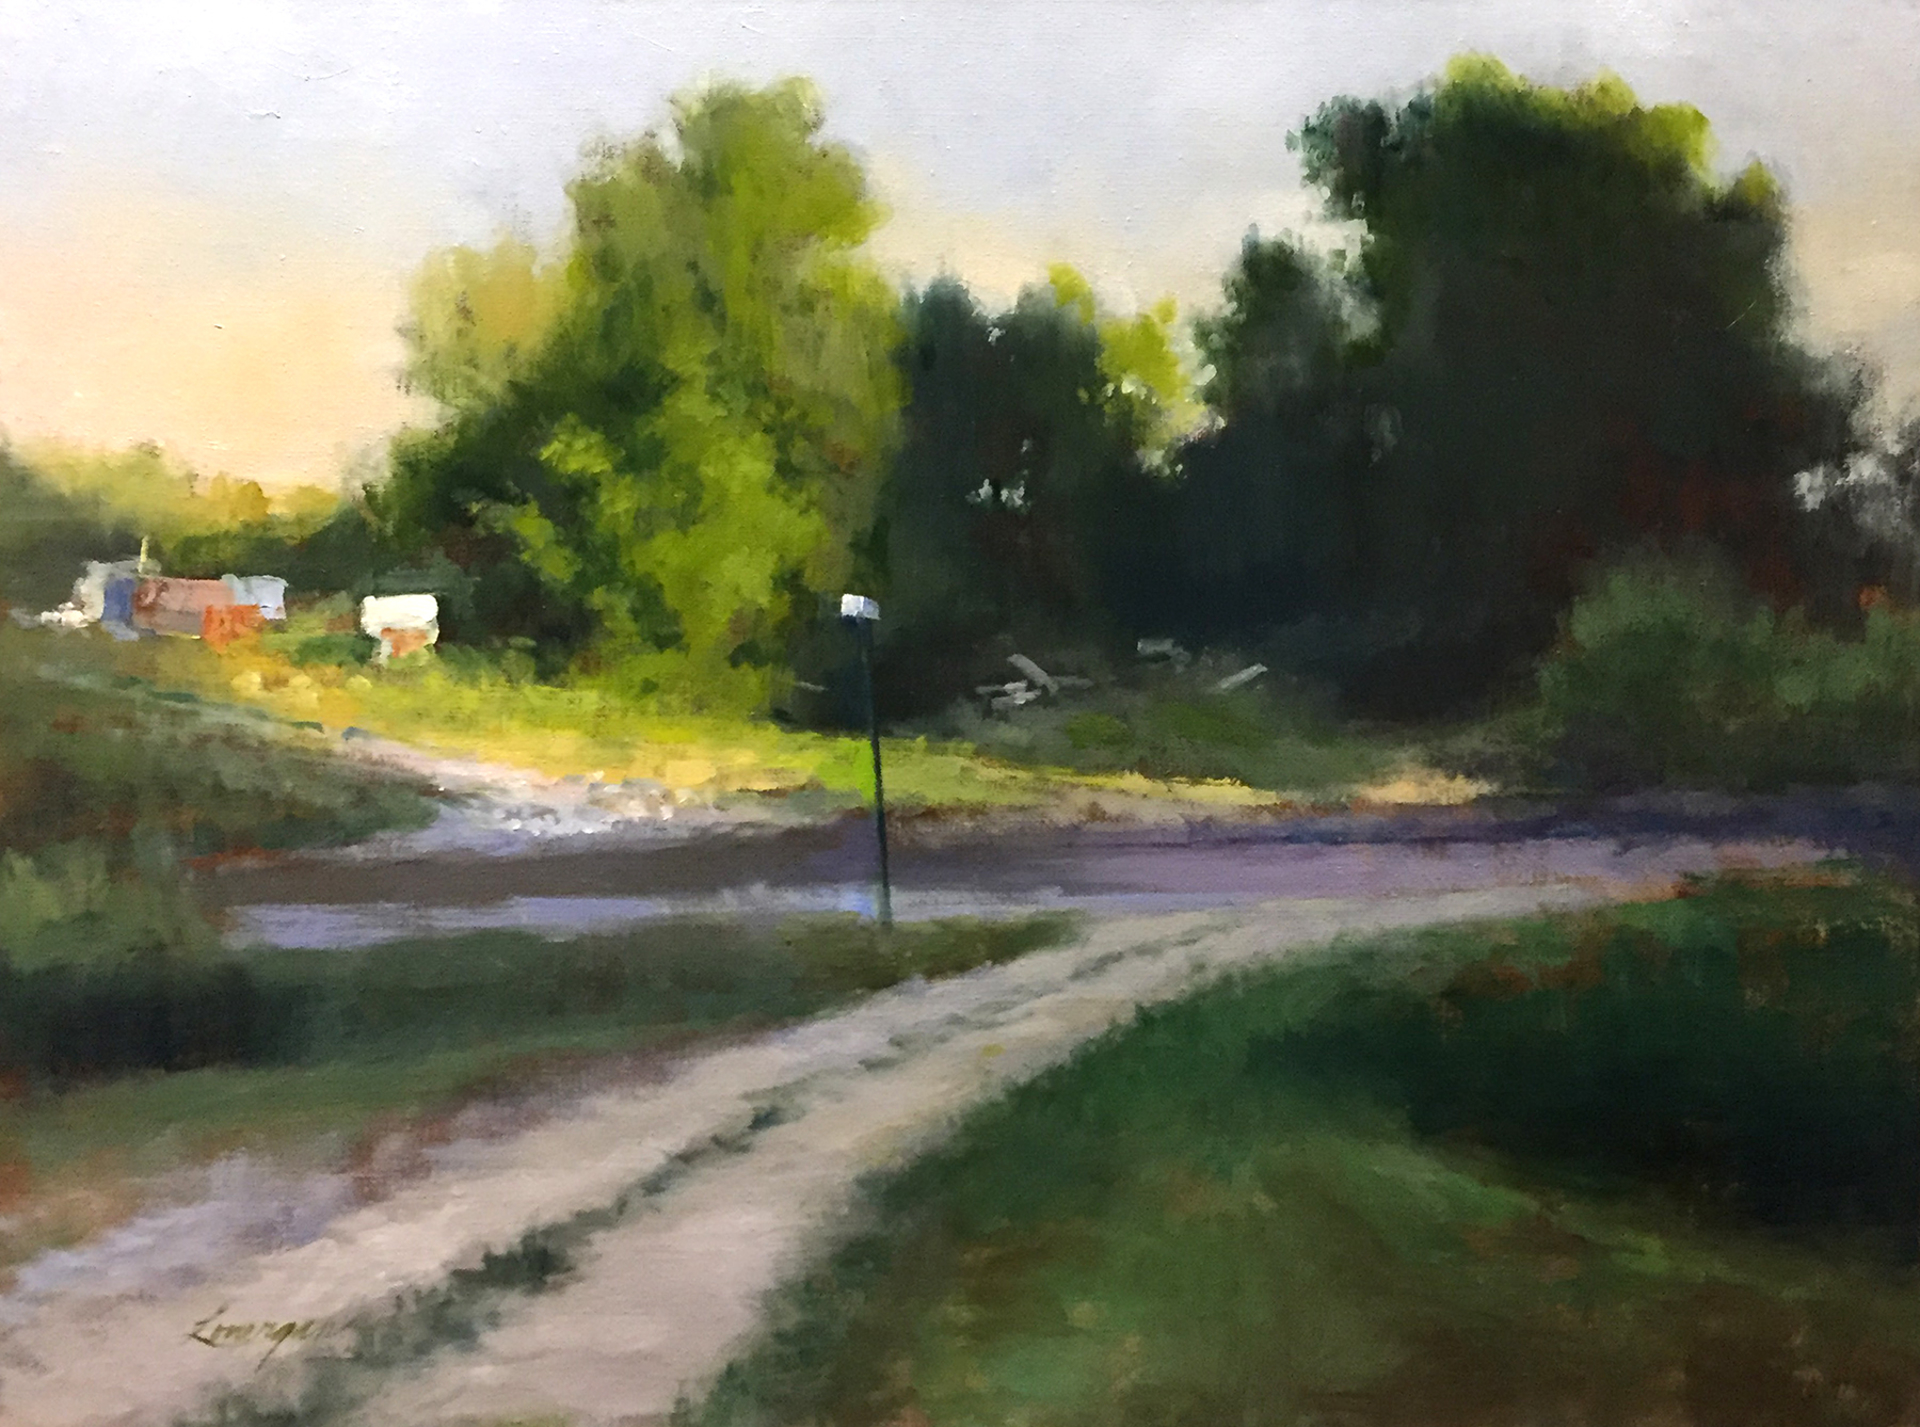 Late Afternoon by John Lonergan